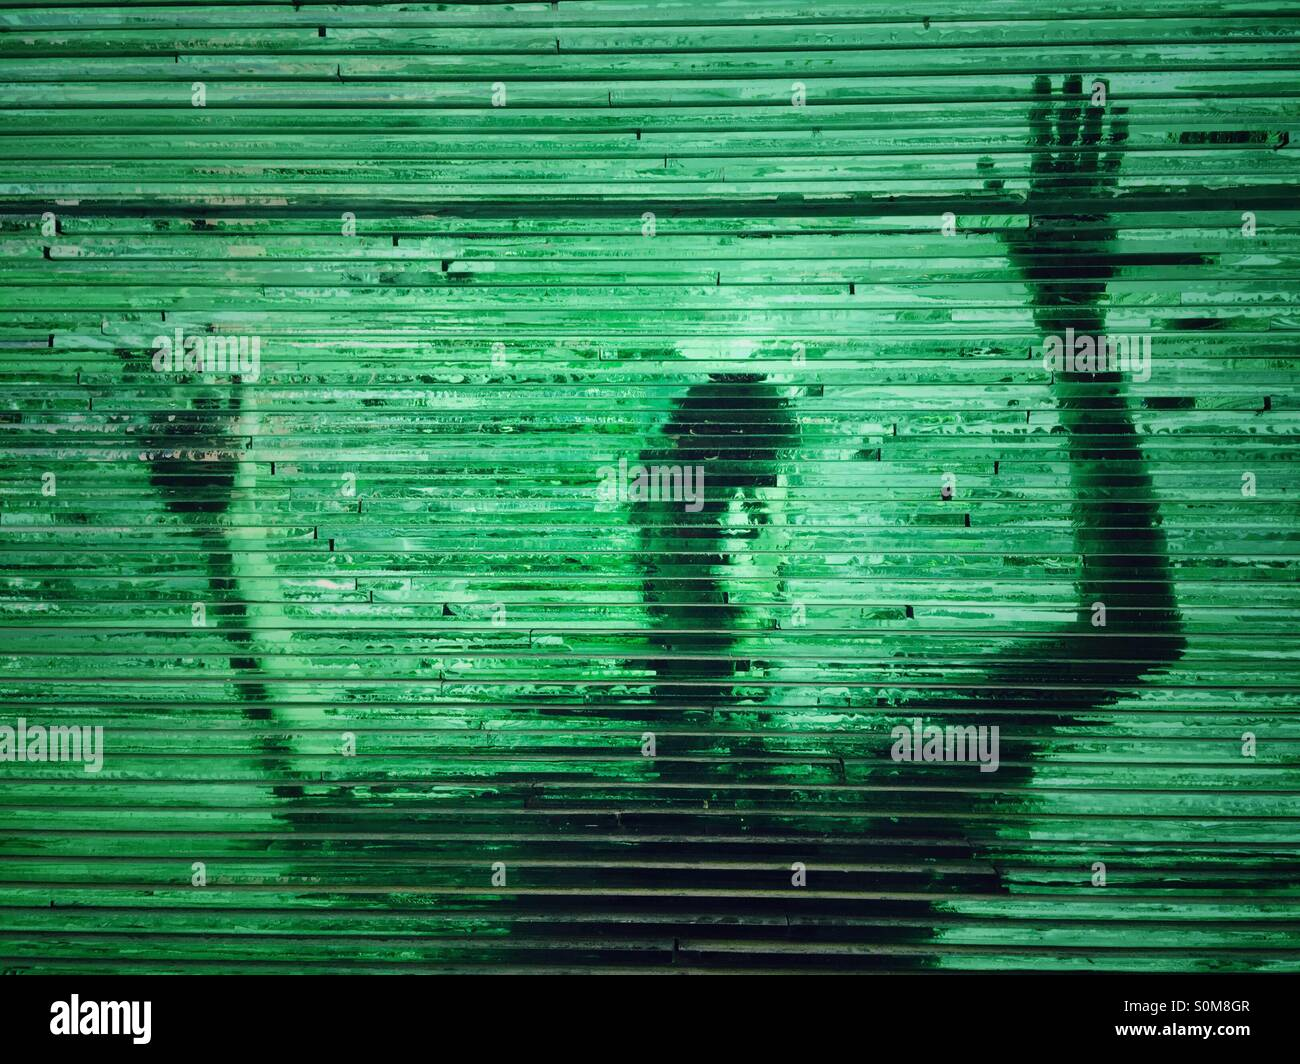 man raising hands behind the green glass wall - Stock Image